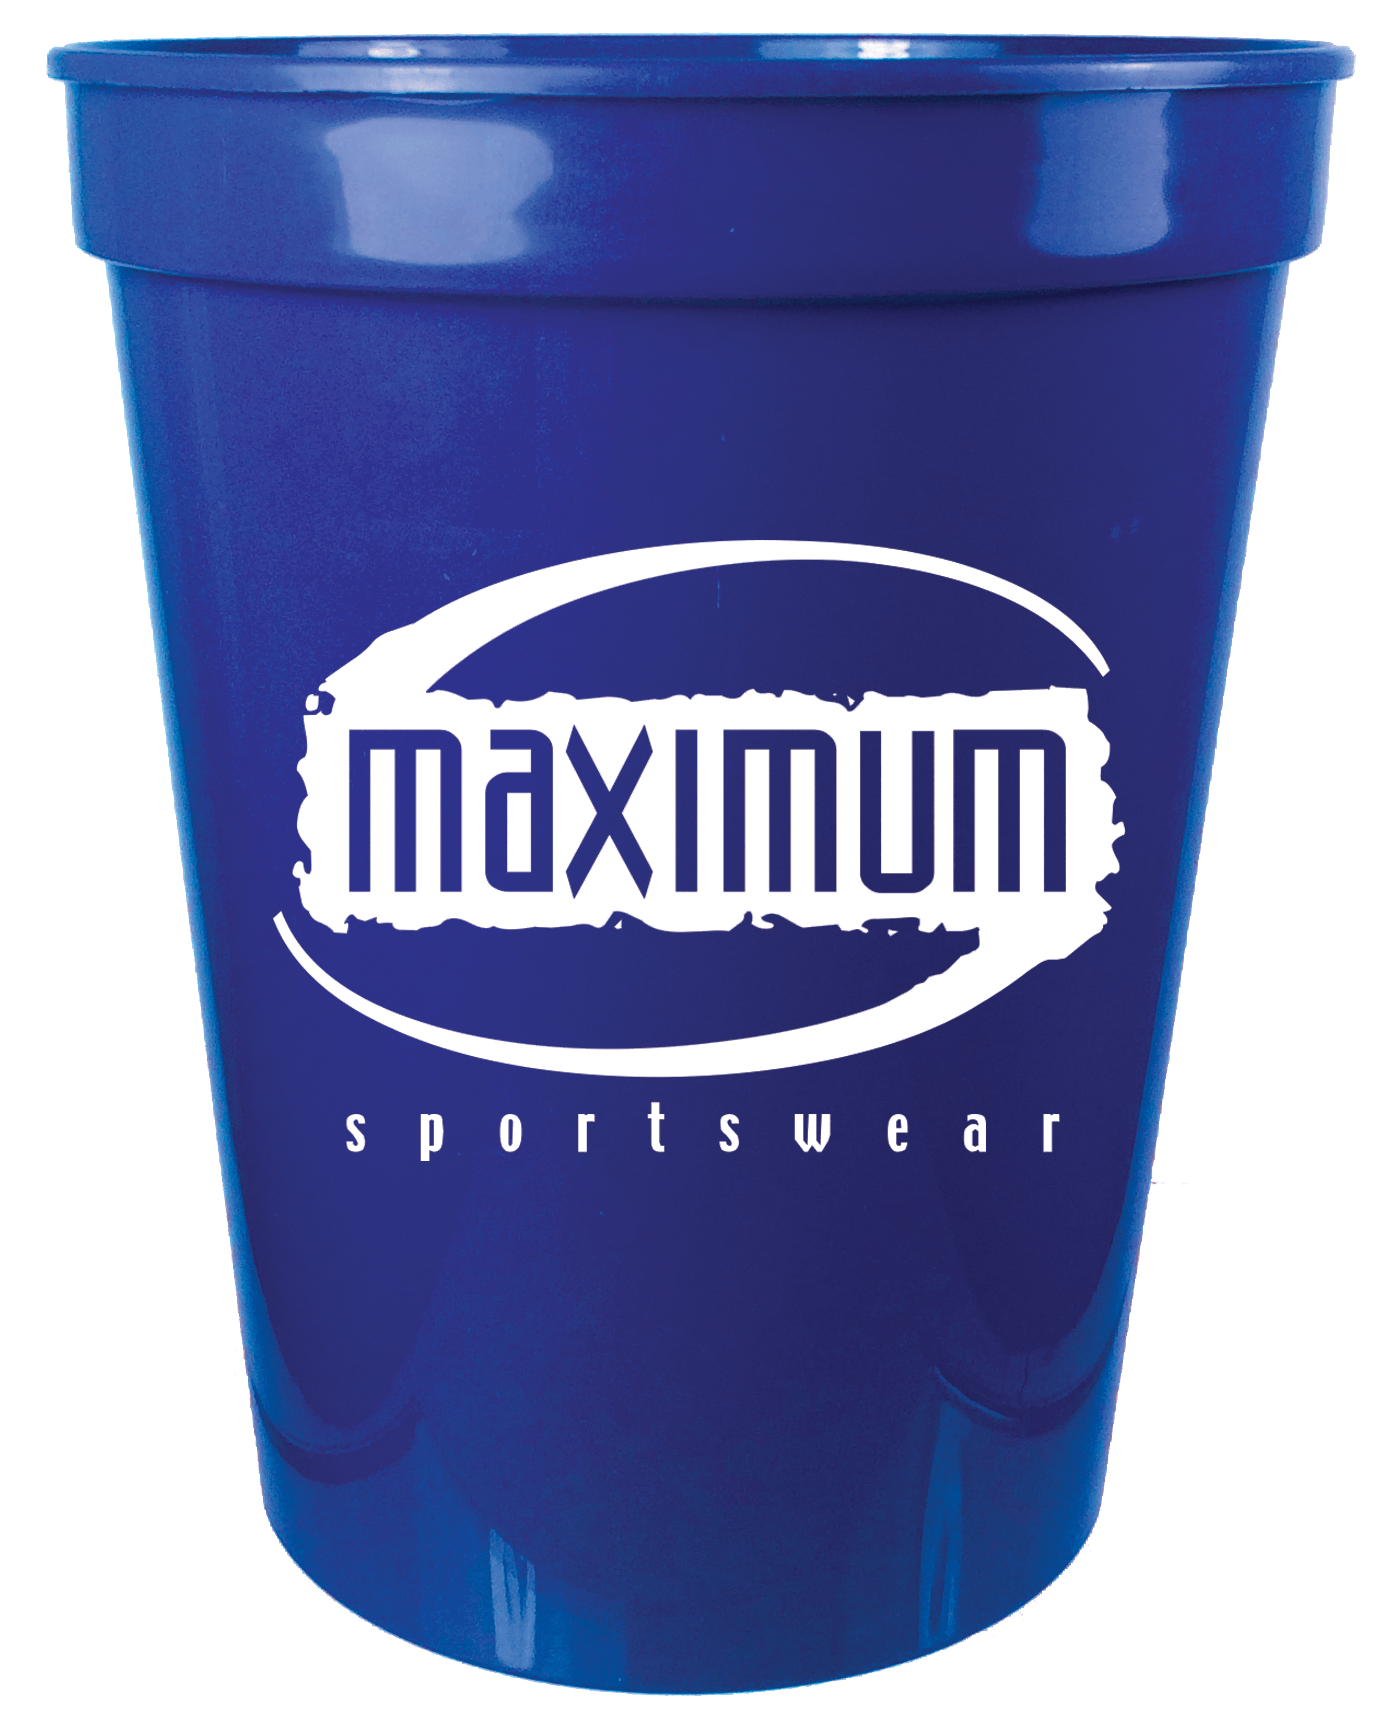 16 oz. Stadium Cup - sold by Clearwater Gear